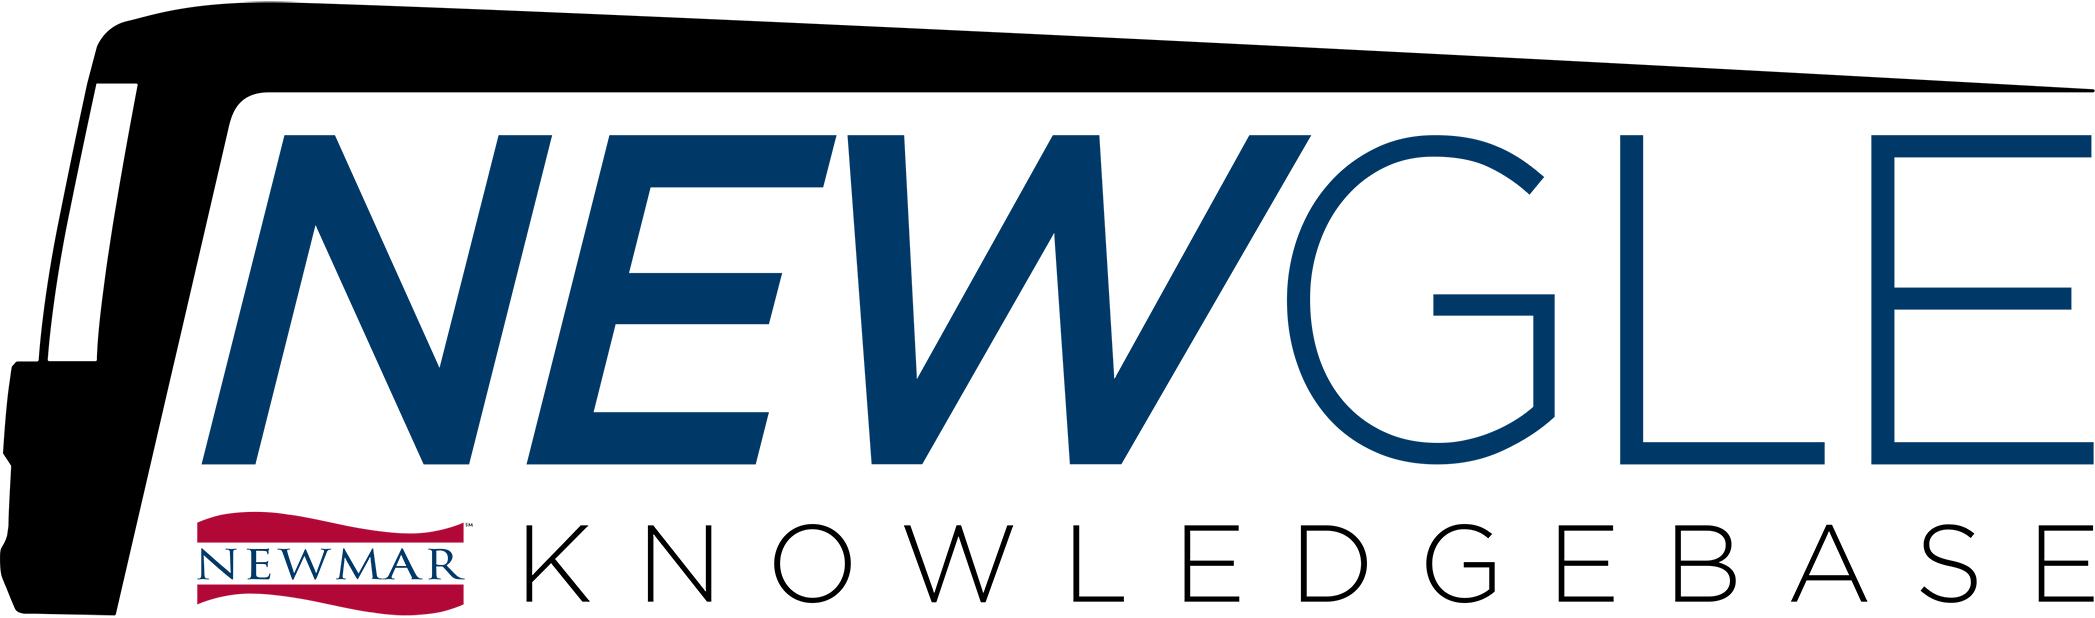 Newgle, Newmar's product and manual database.